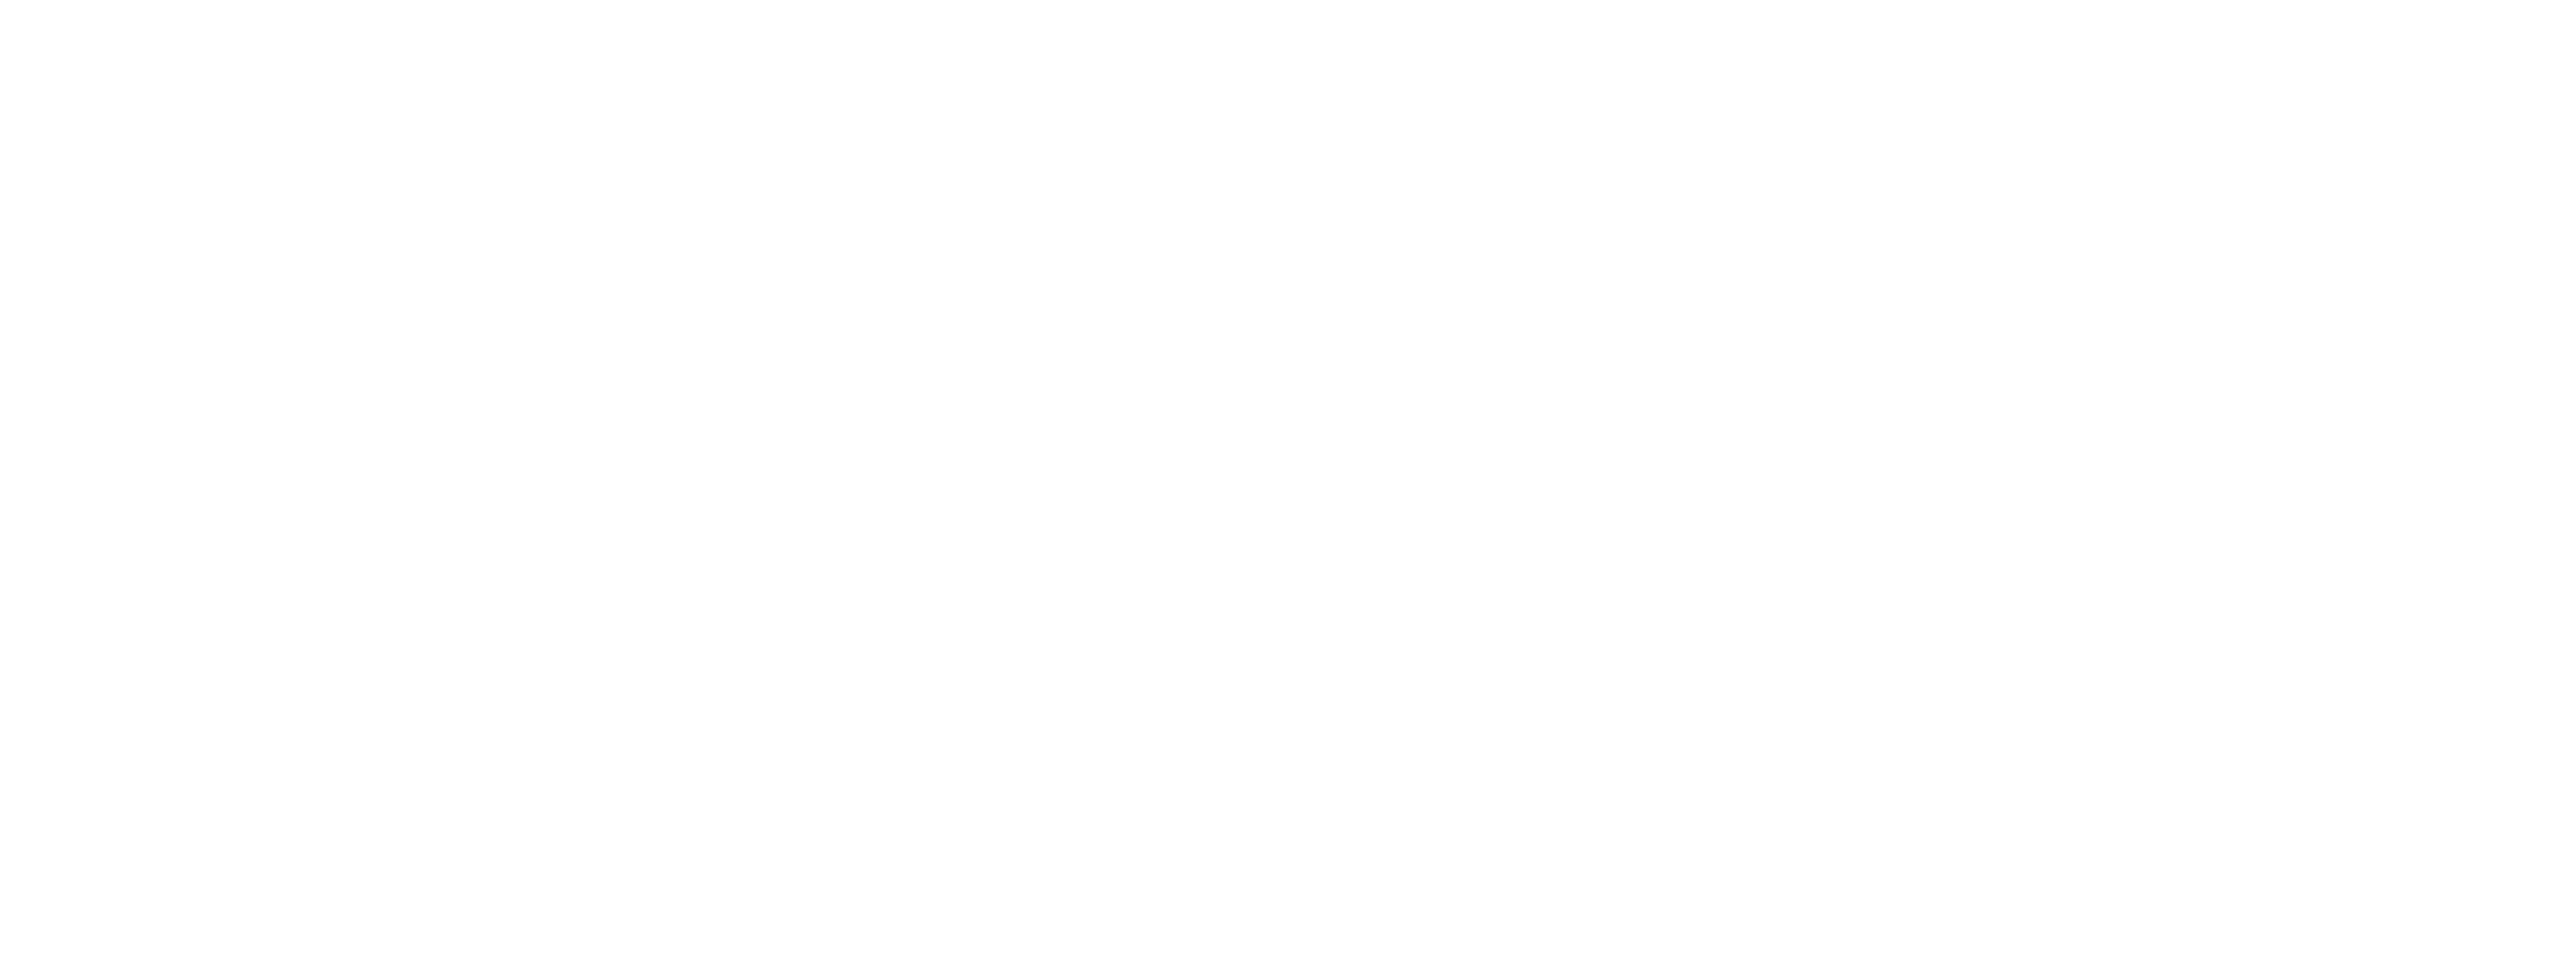 Denver Psychology and Wellness